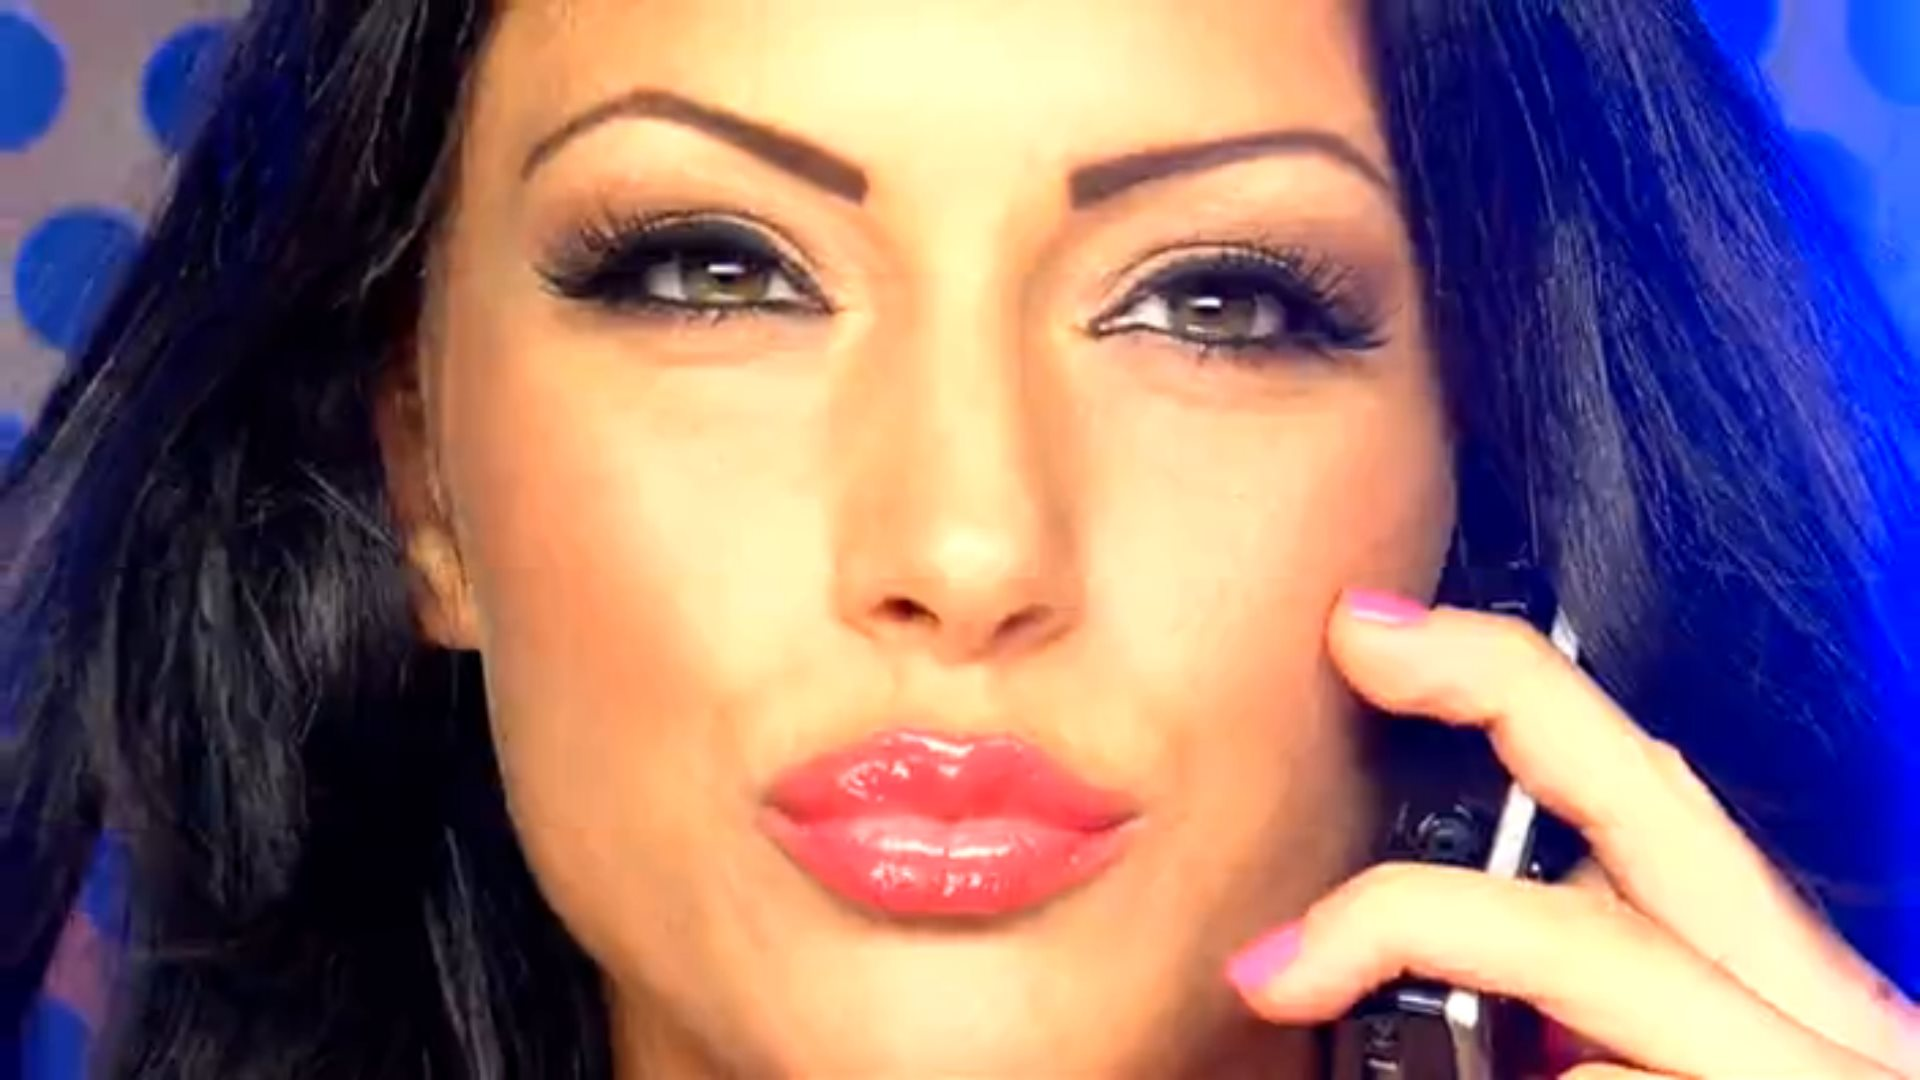 goodwin sex chat Watch newest alice goodwin porn videos for free on xhamstercom download and stream full length alice  uk babe alice goodwin - tv sex chat and fantasy cumshots .